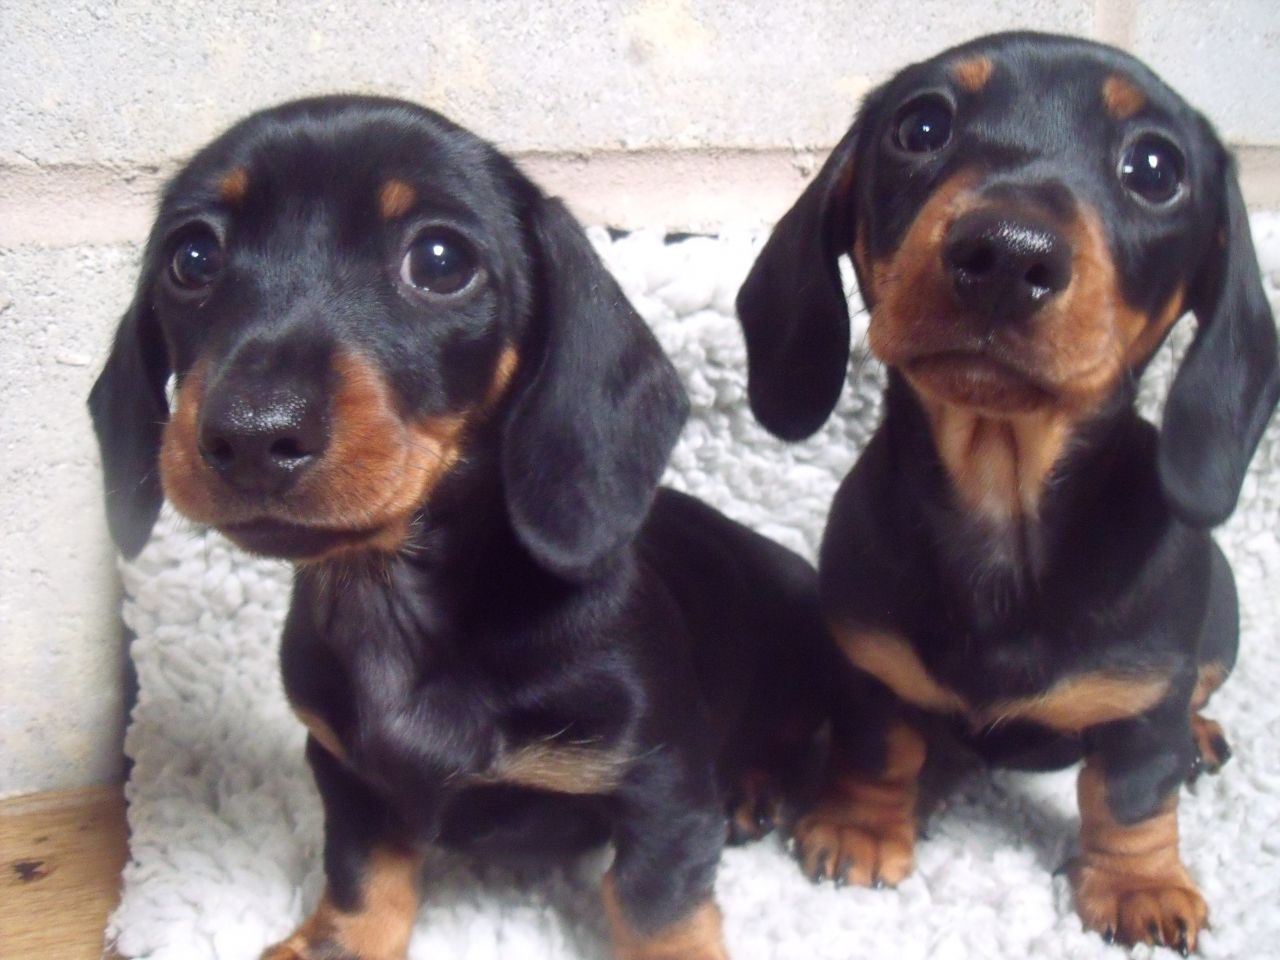 Dachshund miniature puppies